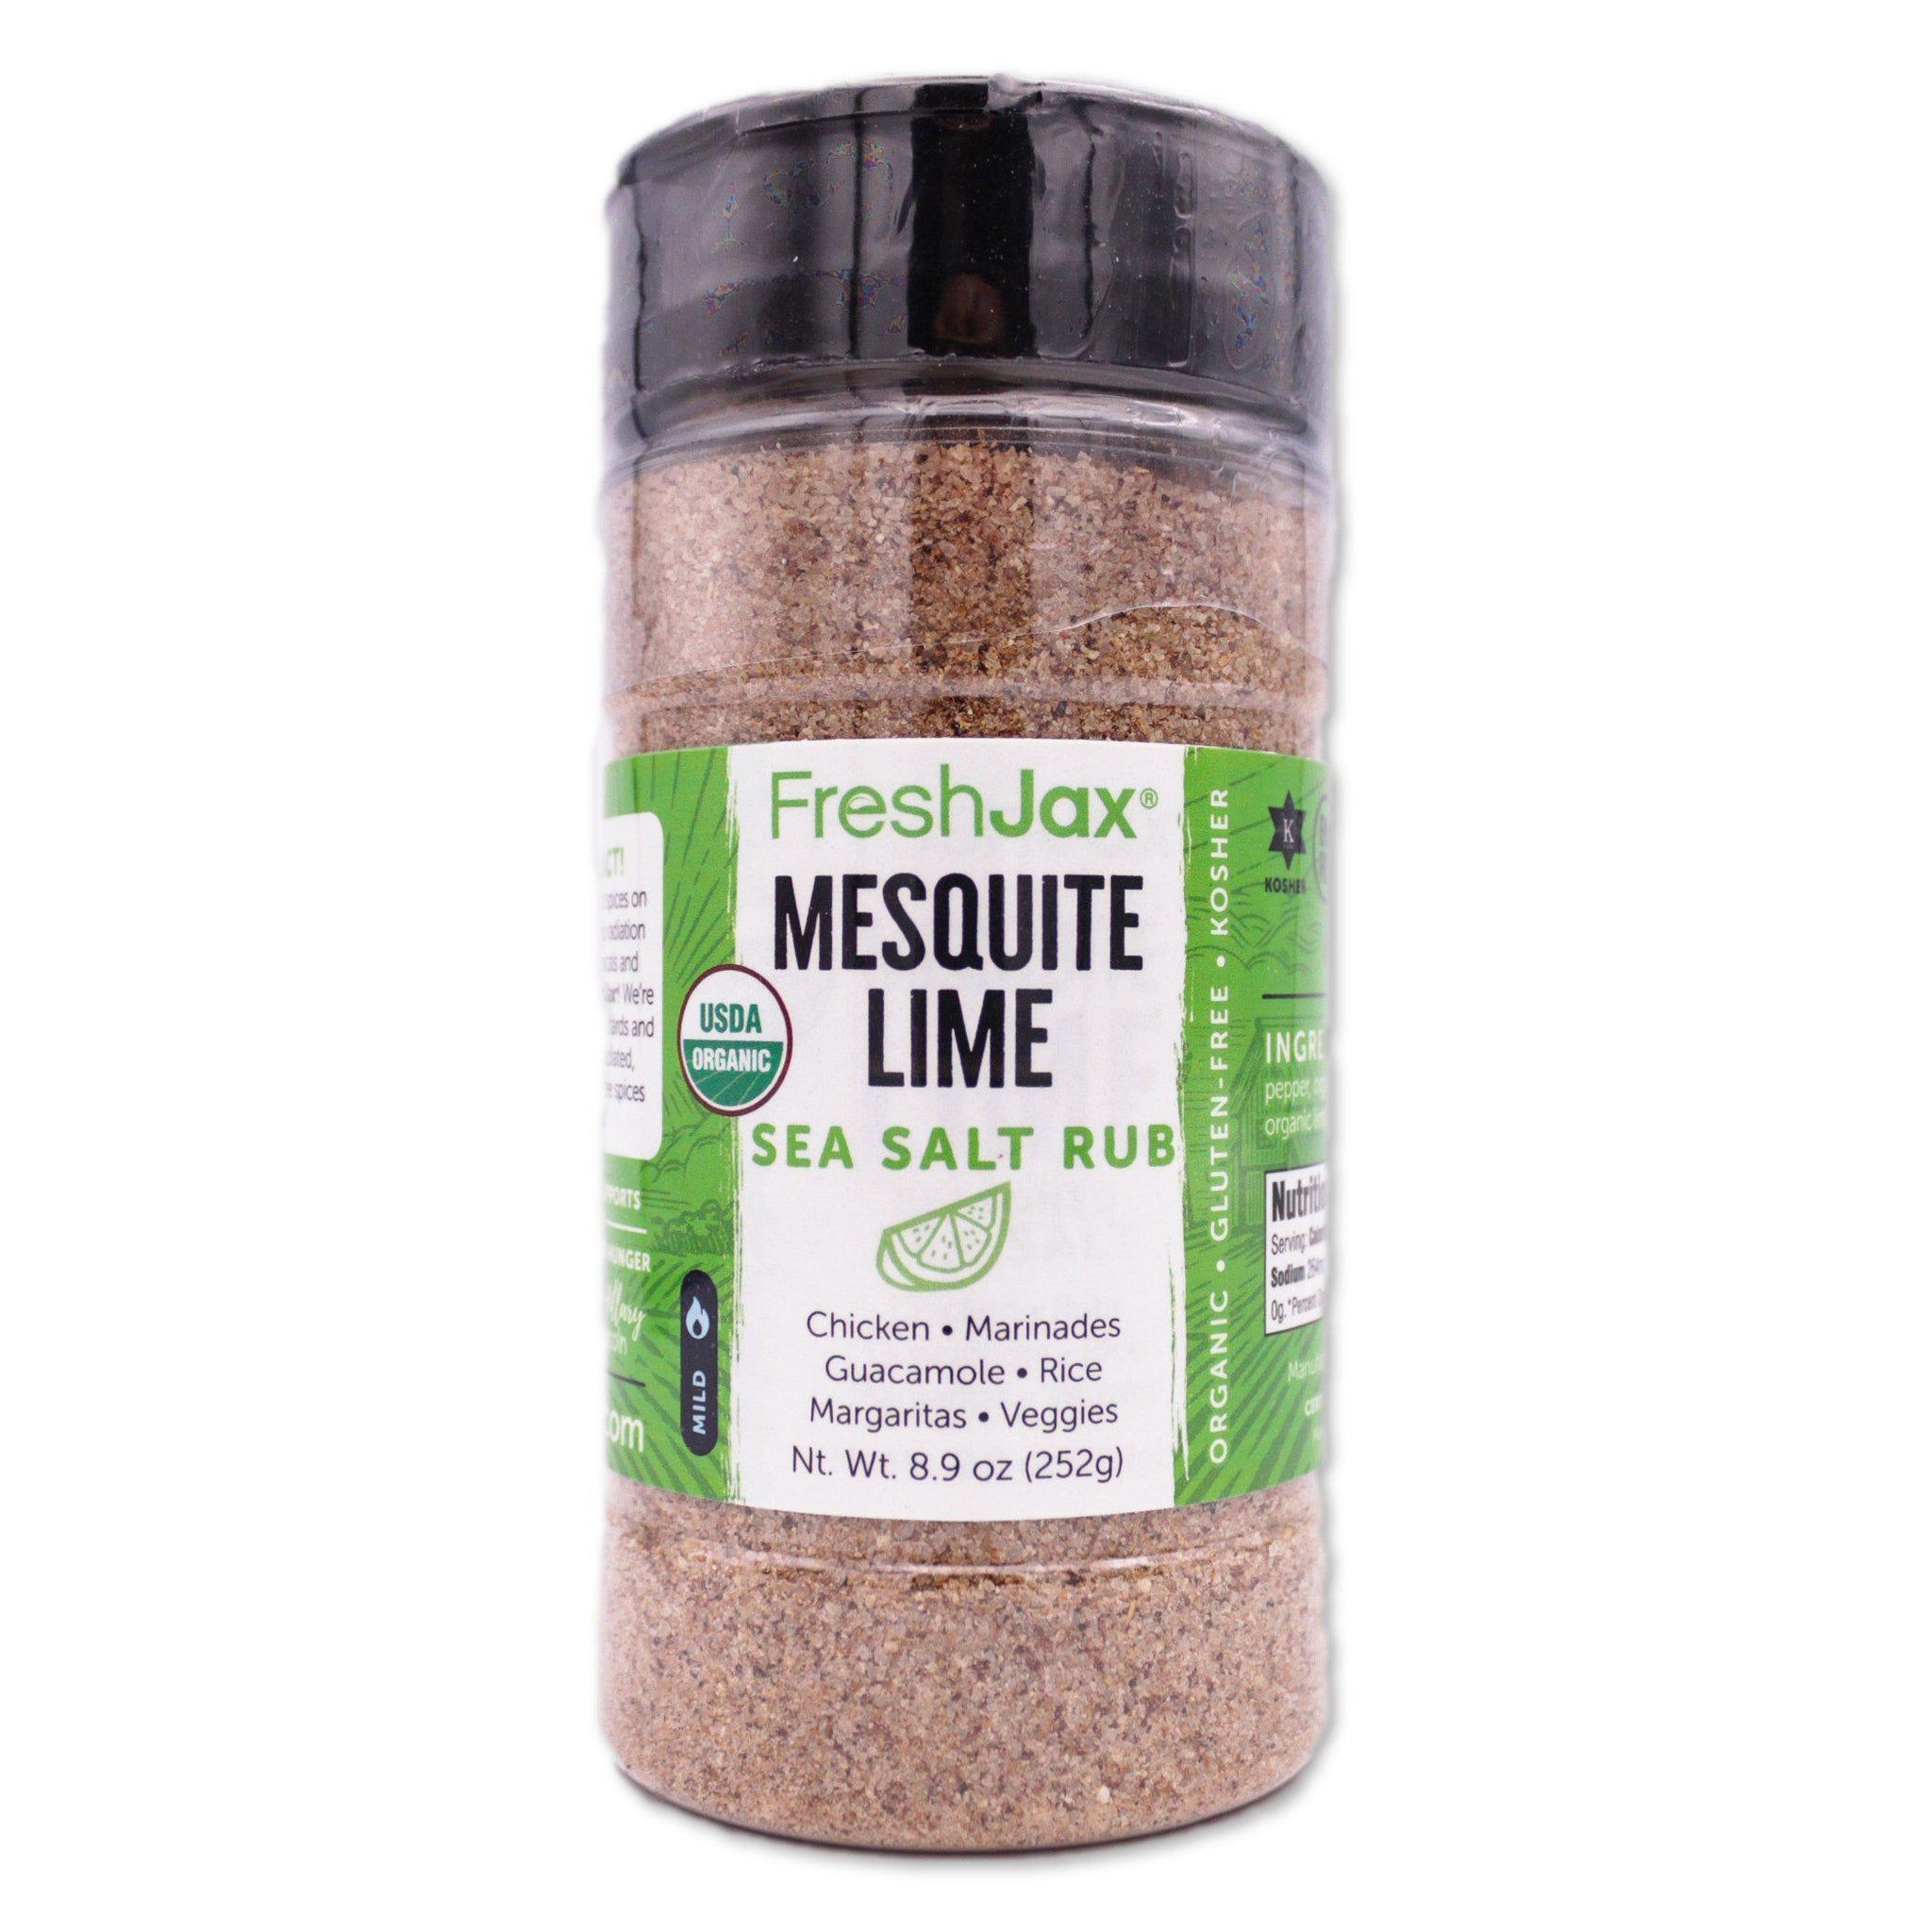 Mesquite Lime: Organic Seasoned Sea Salt